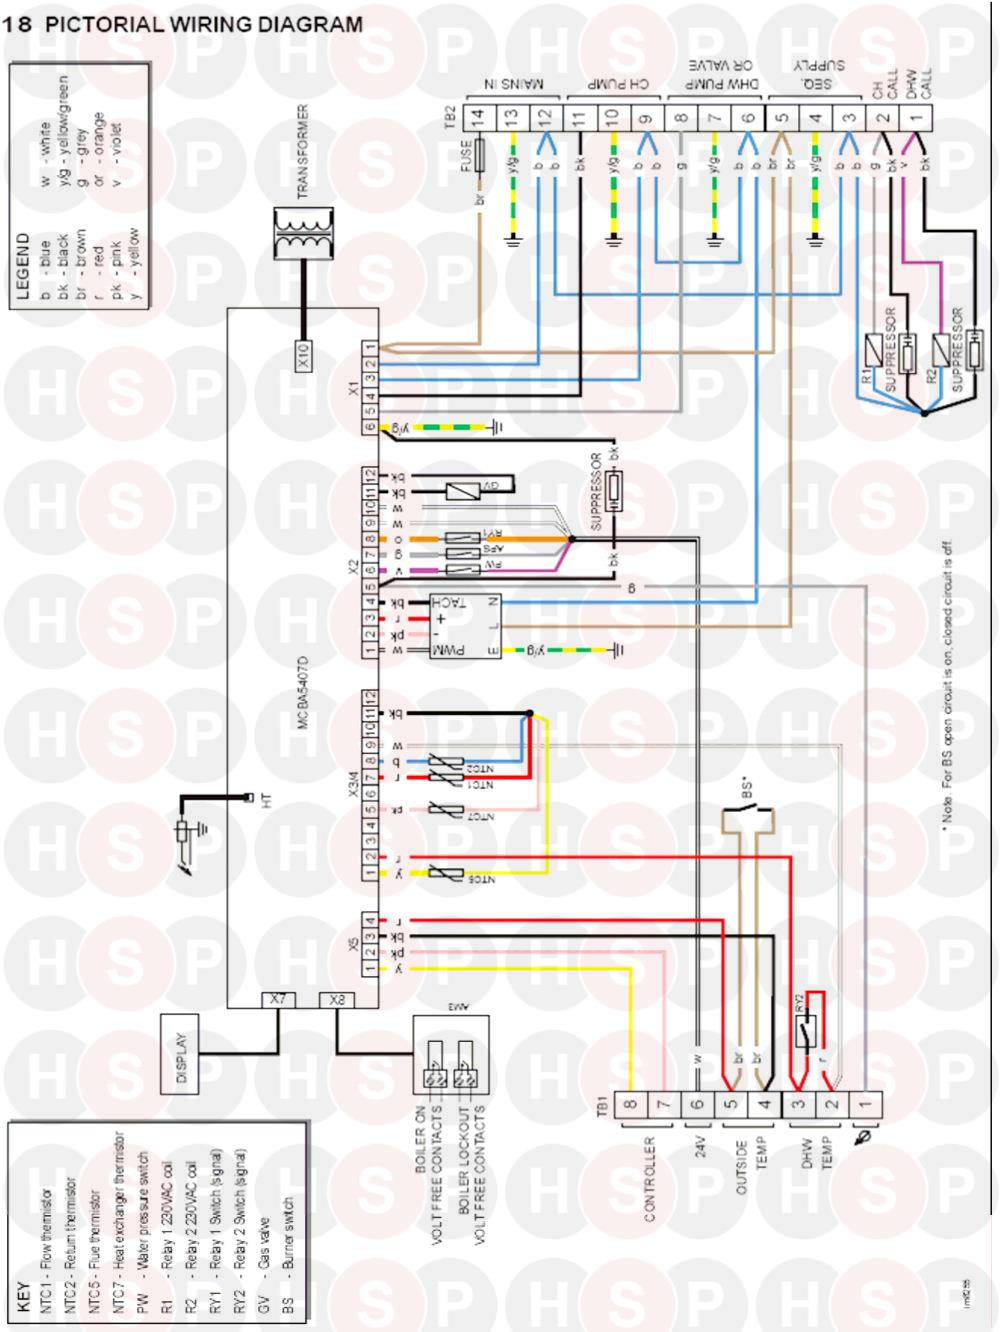 Ideal IMAX XTRA F400 (WIRING) Diagram   Heating Spare Parts on free electrical diagrams, free flow charts, free transmission diagrams, free vehicle diagrams, free engine diagrams, free wood diagrams, free floor plans, electronic circuit schematic diagrams, free electronics diagrams, boat electrical diagrams, free hvac diagrams, free circuit diagrams, free vacuum diagrams, free repair diagrams, free lighting diagrams, free body diagrams, john deere electrical diagrams,